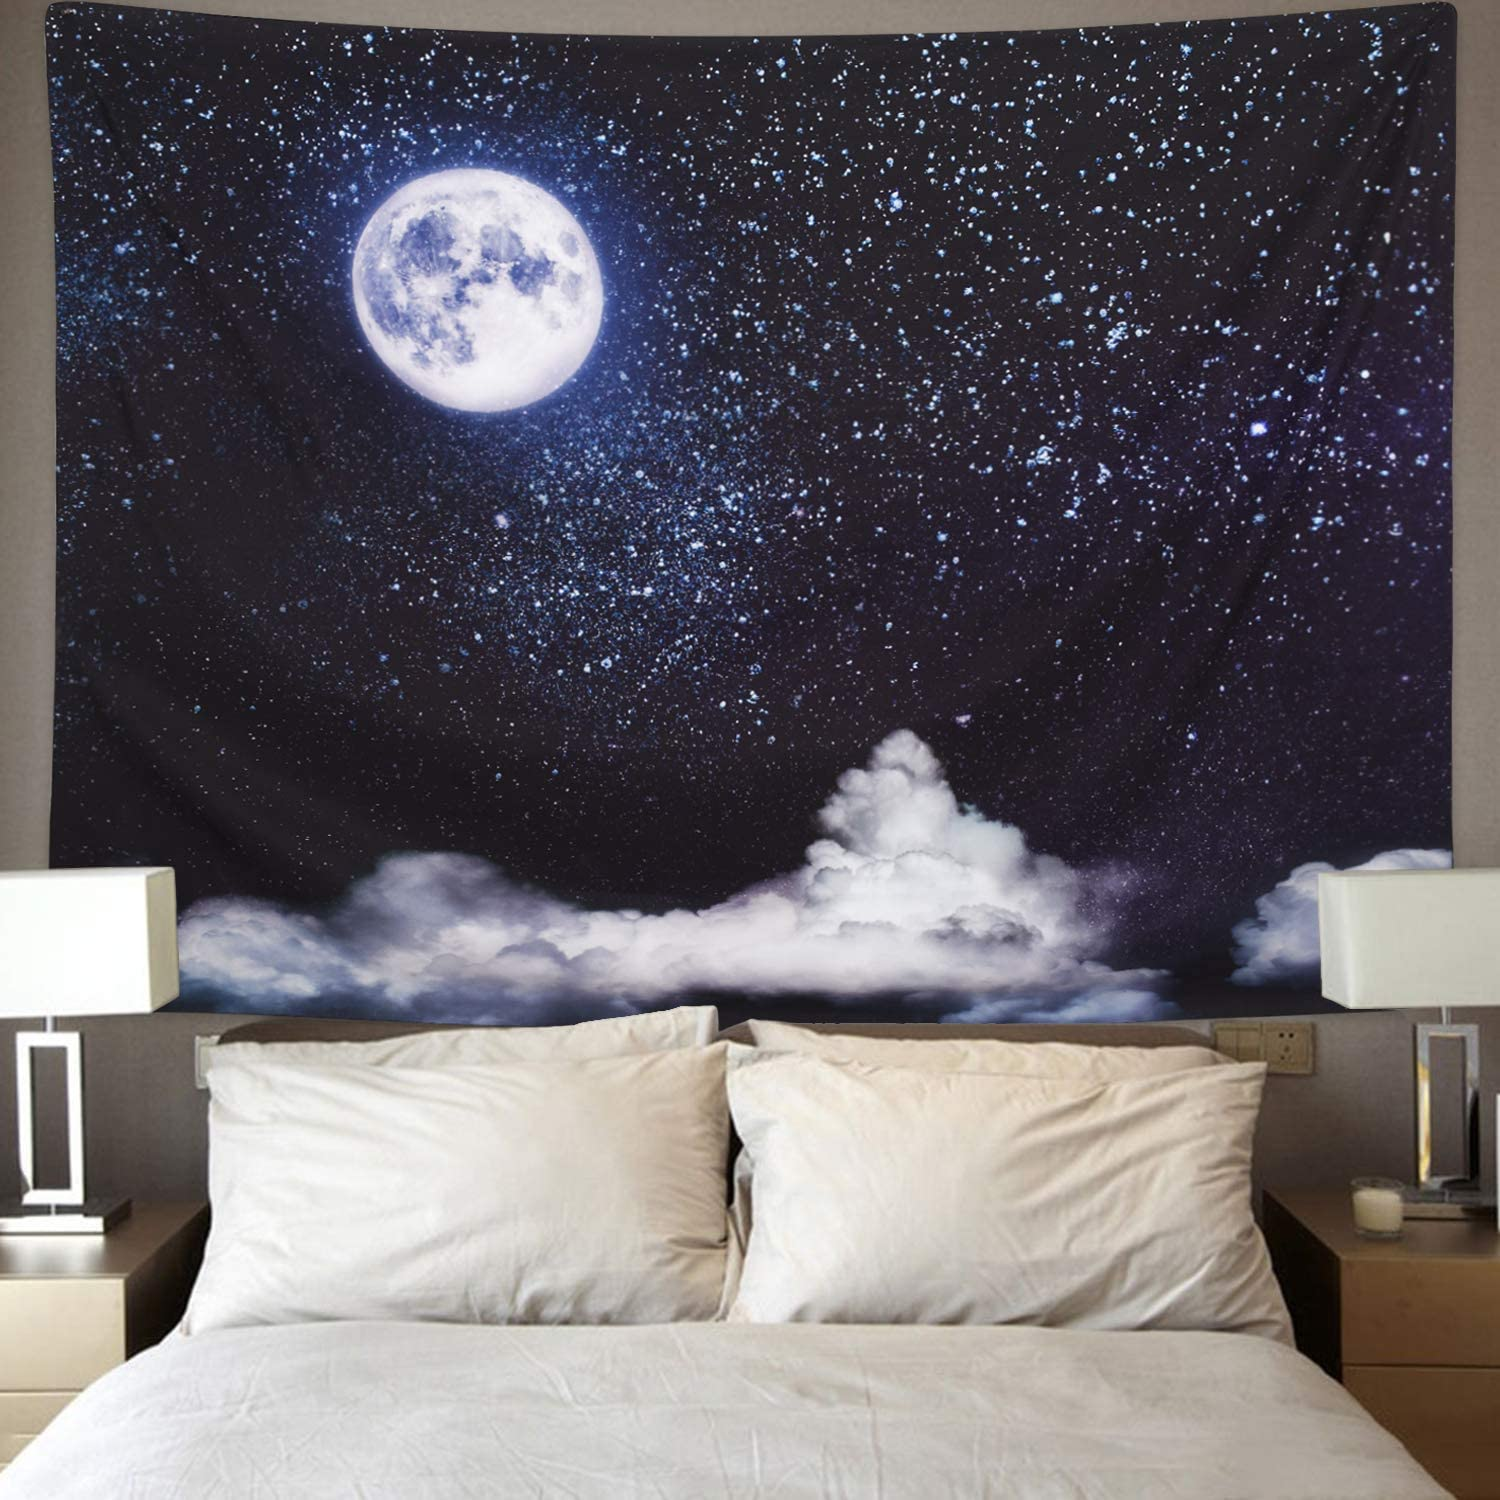 BLEUM CADE Moon and Clouds Tapestry Wall Hanging Star Tapestry Starry Sky Tapestry for Living Room Bedroom Dorm Home Decor